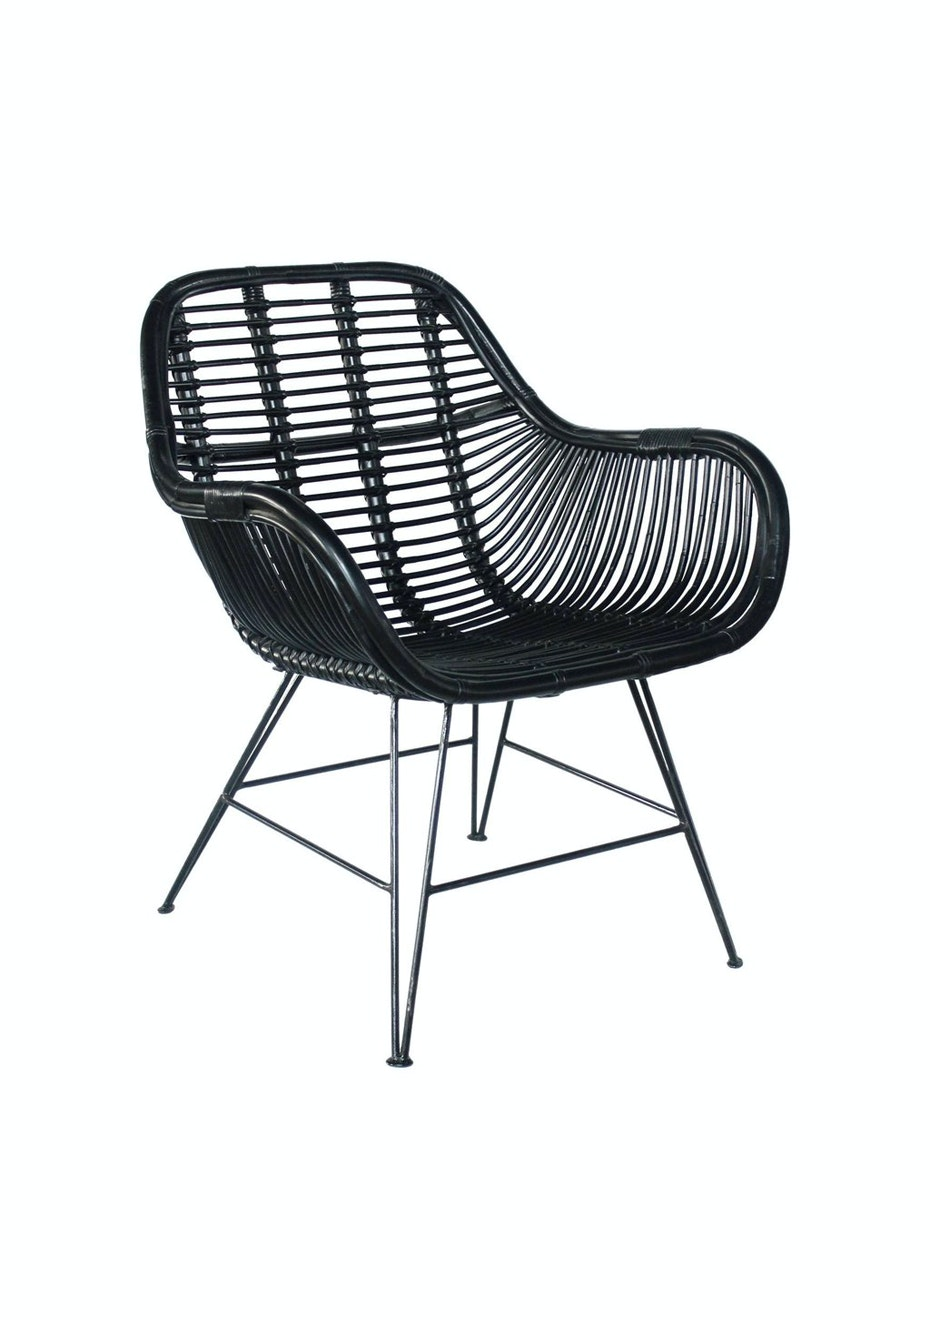 General Eclectic   Elton Rattan Chair   General Eclectic Home From $7.95    Onceit